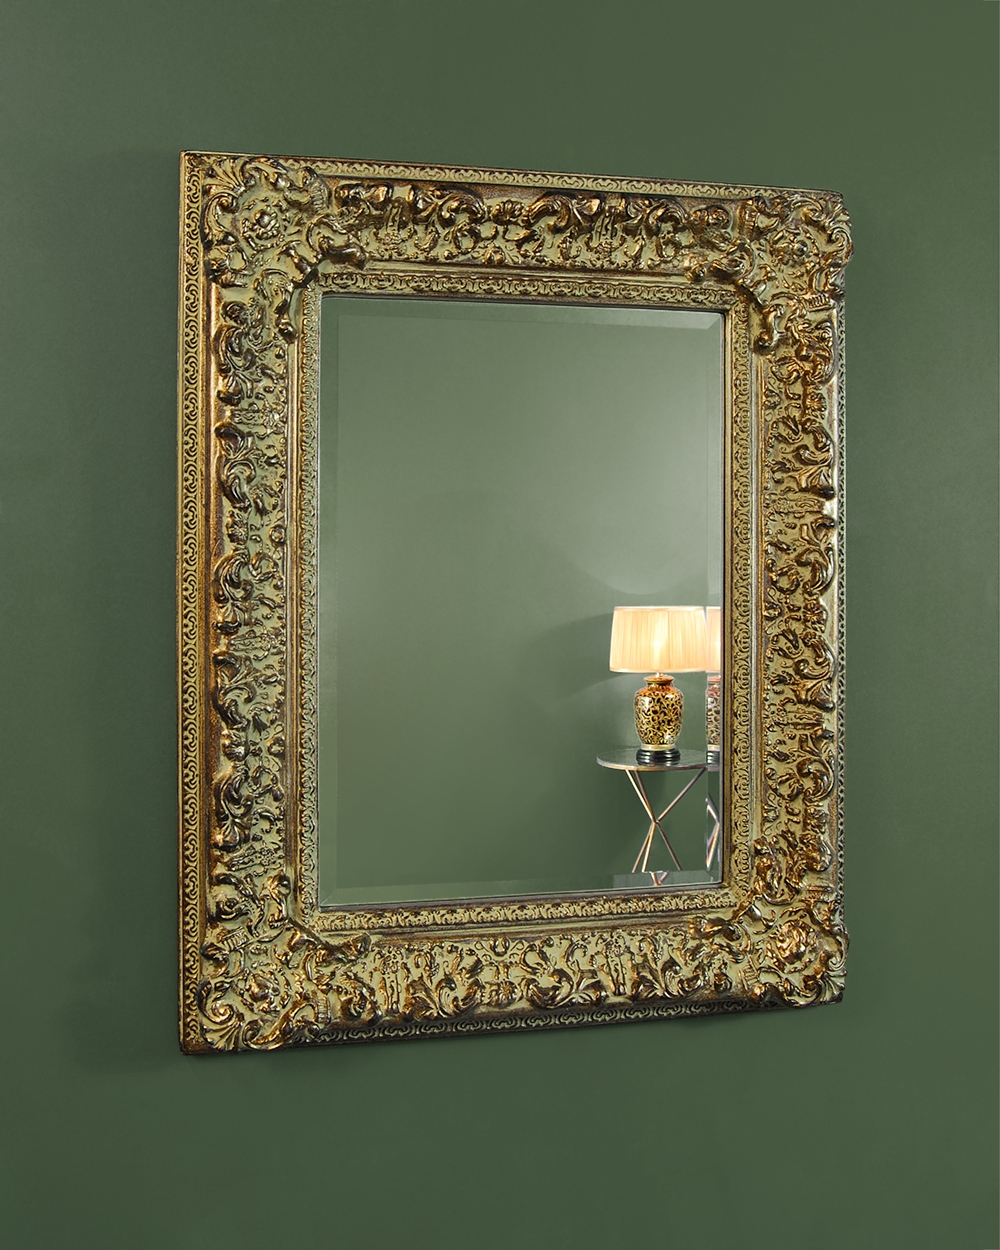 Decorative Mirrors Decorative Wall Mirror Range The C M Company With Regard To Ornamental Mirrors (Image 5 of 15)